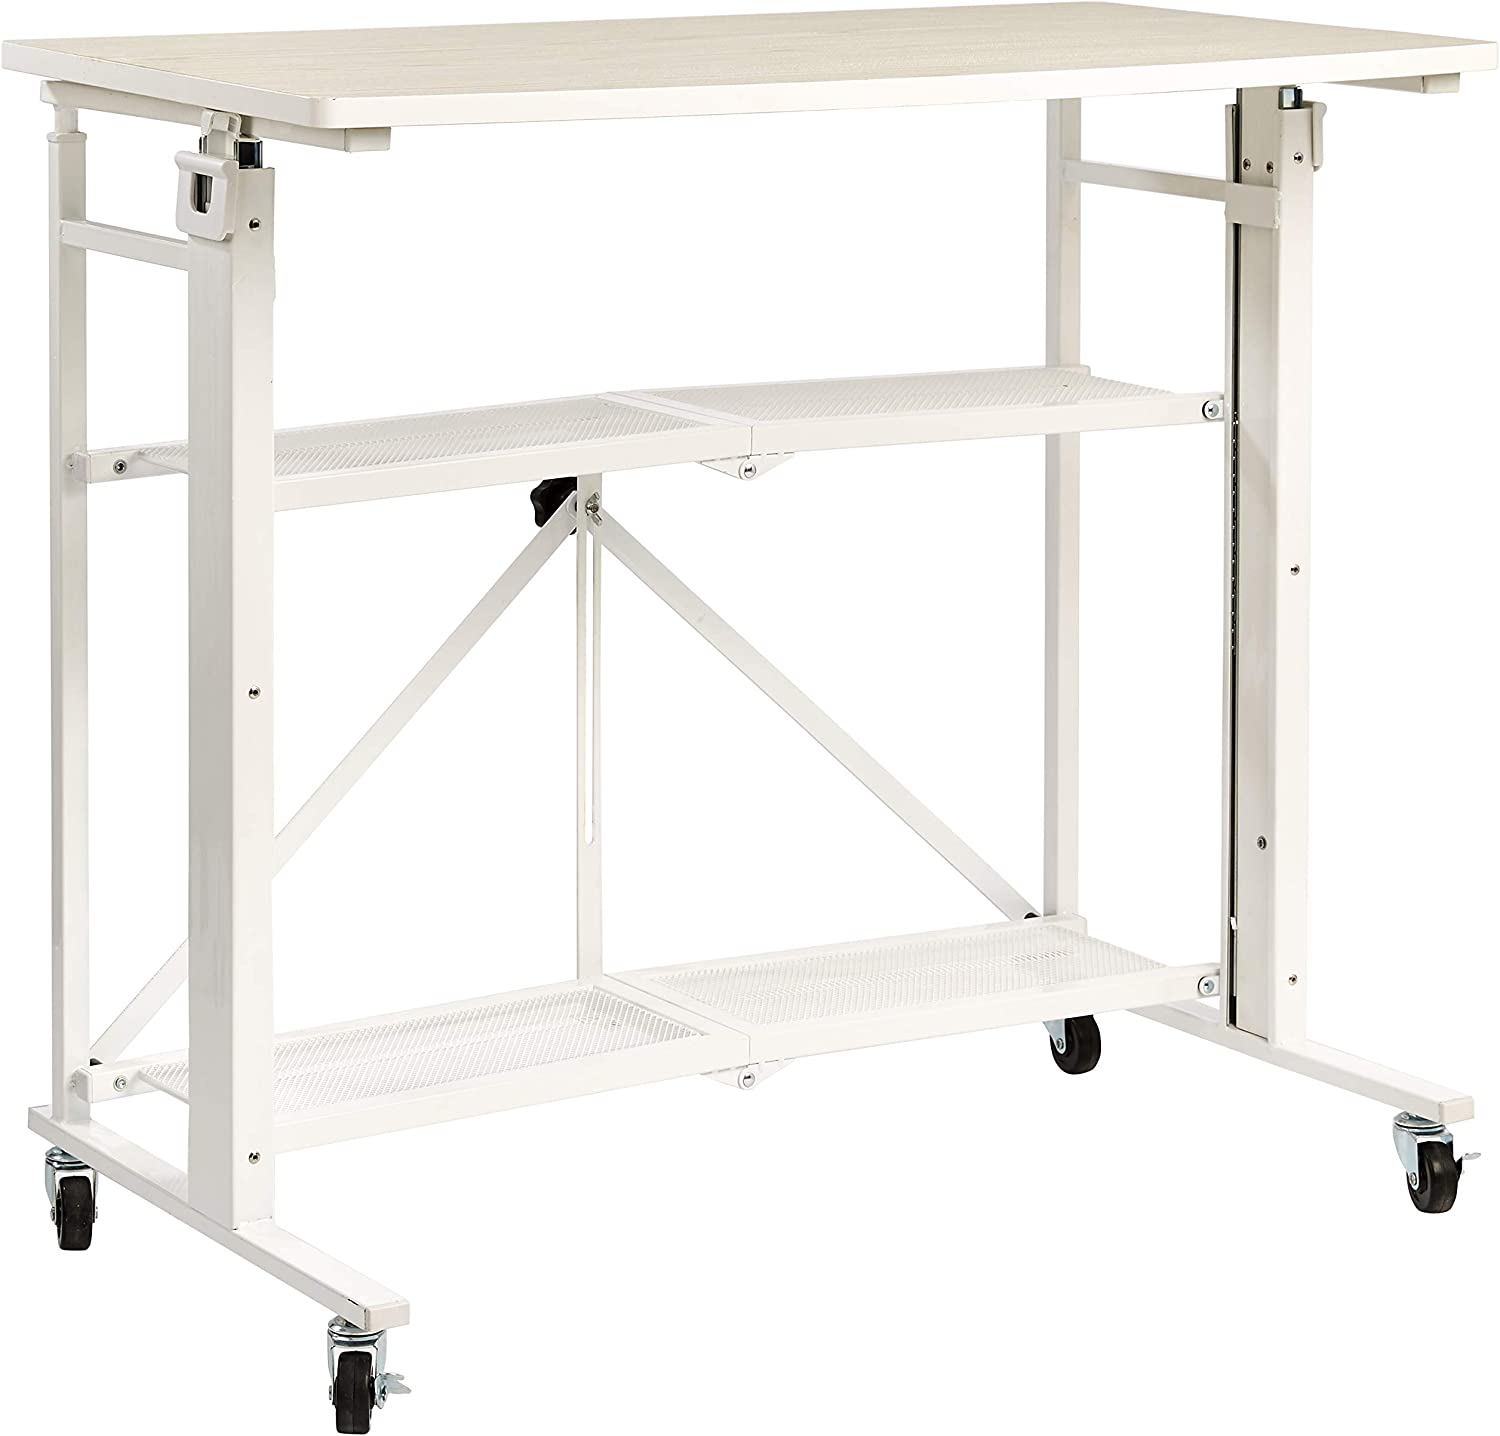 AmazonBasics Foldable Standing Computer Desk with Storage Shelf, Adjustable Height, Easy Assembly - White